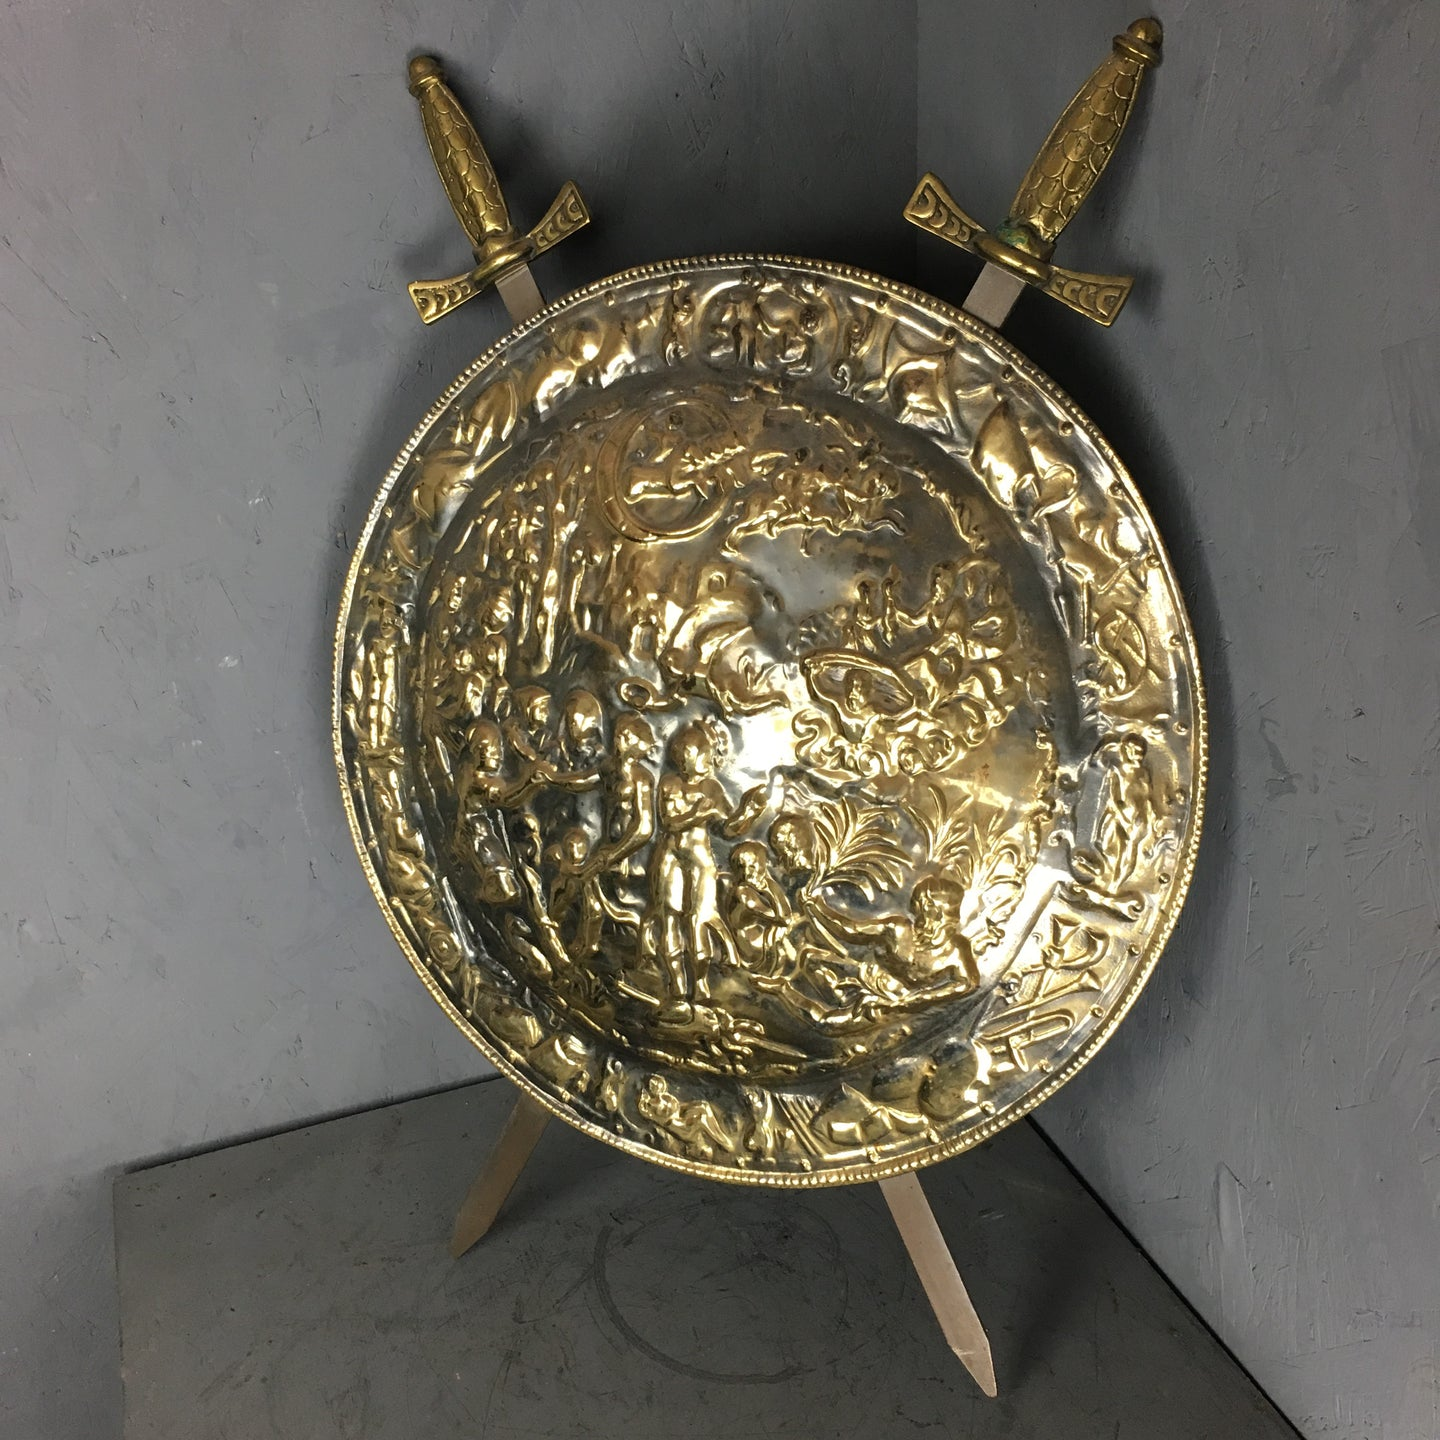 Decorative Repouso brass sheild with crosses swords